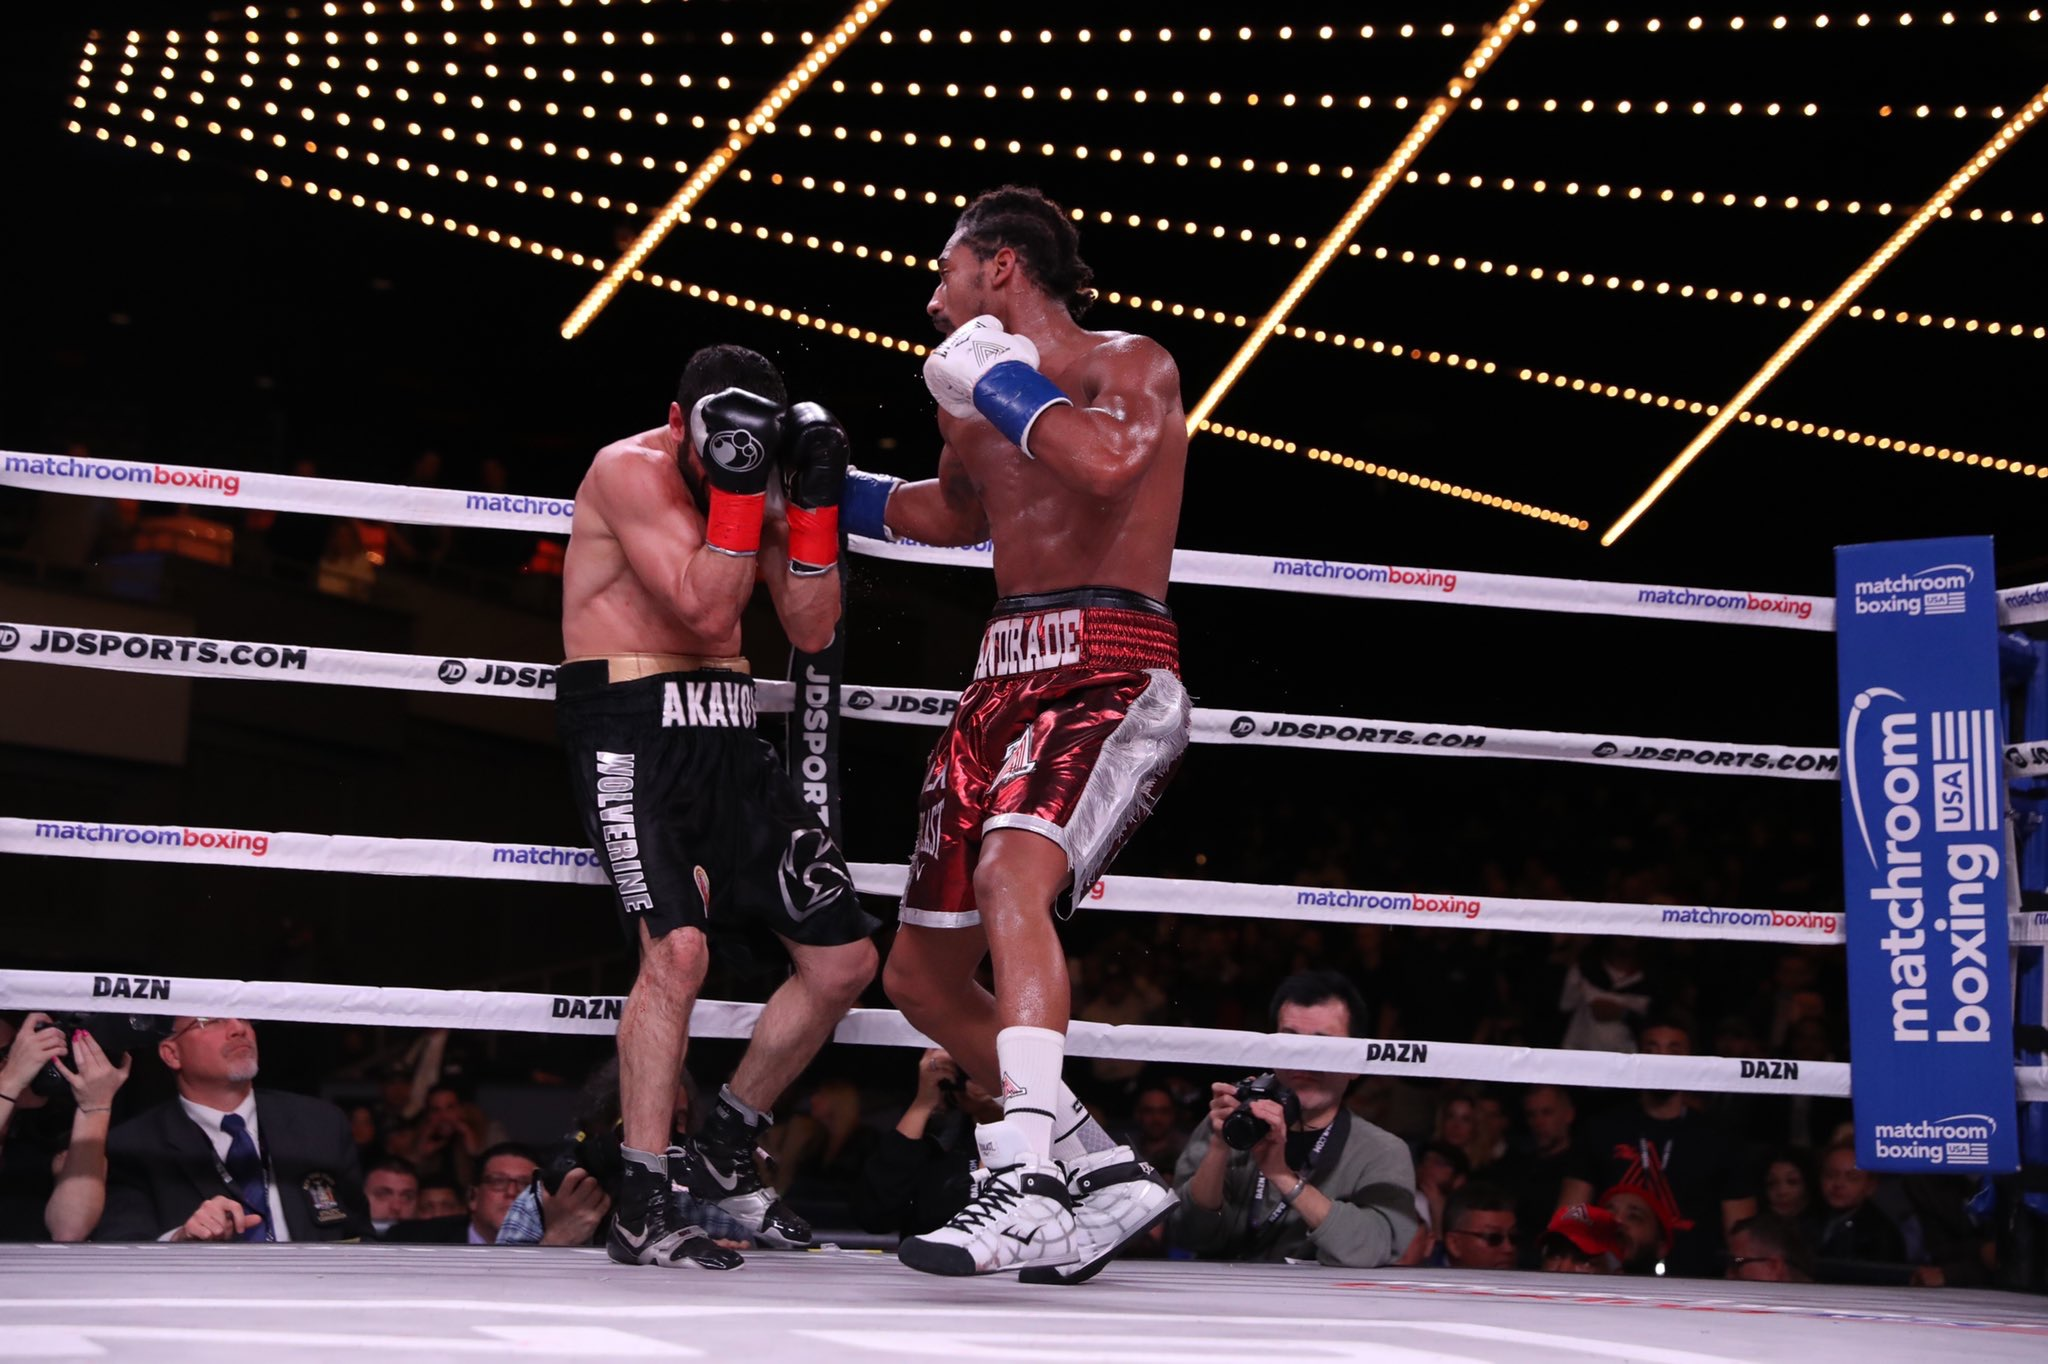 2B78610F 72AB 4C8A 9E8D 9EBAD1BBBFA0 - DAZN Boxing Results: Cano Stuns With First Round KO Of Linares, Andrade Dominates Akavov